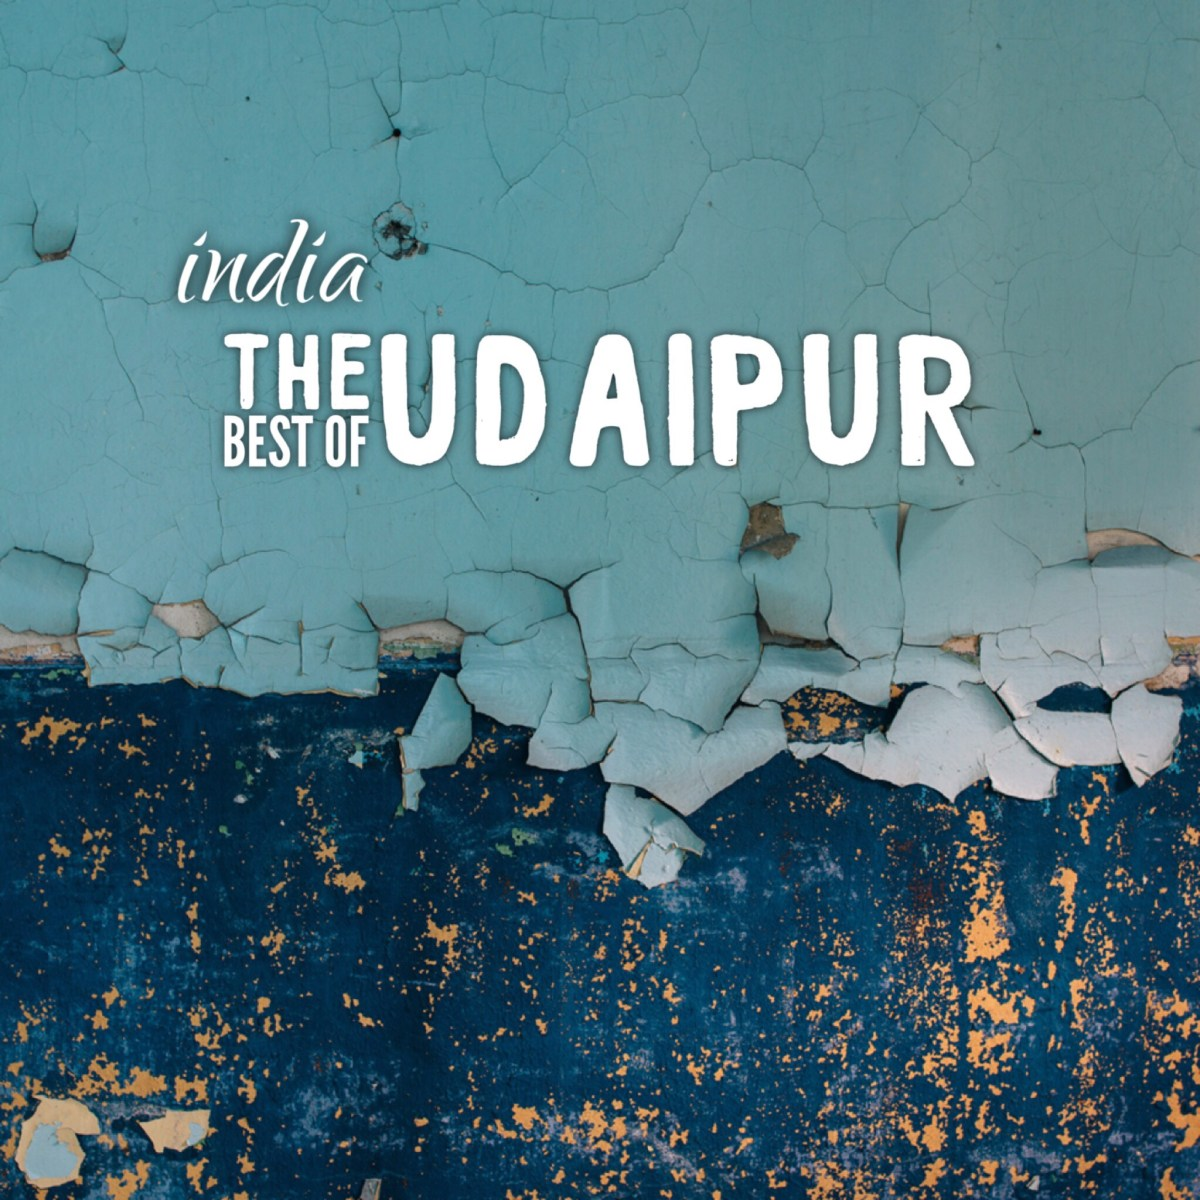 The Best of Udaipur